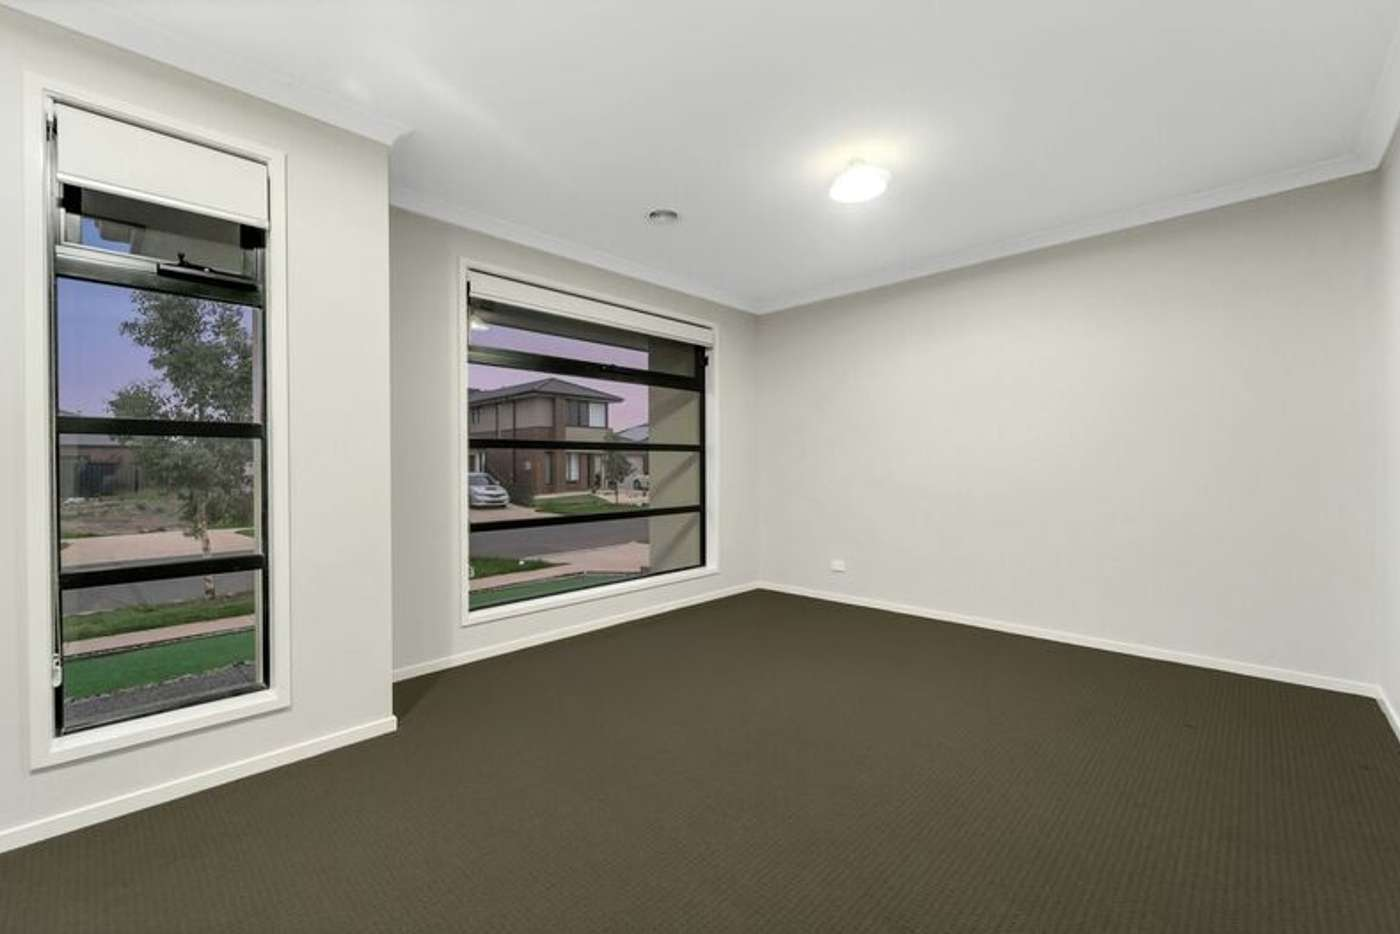 Seventh view of Homely house listing, 4 Wonderboom Avenue, Tarneit VIC 3029